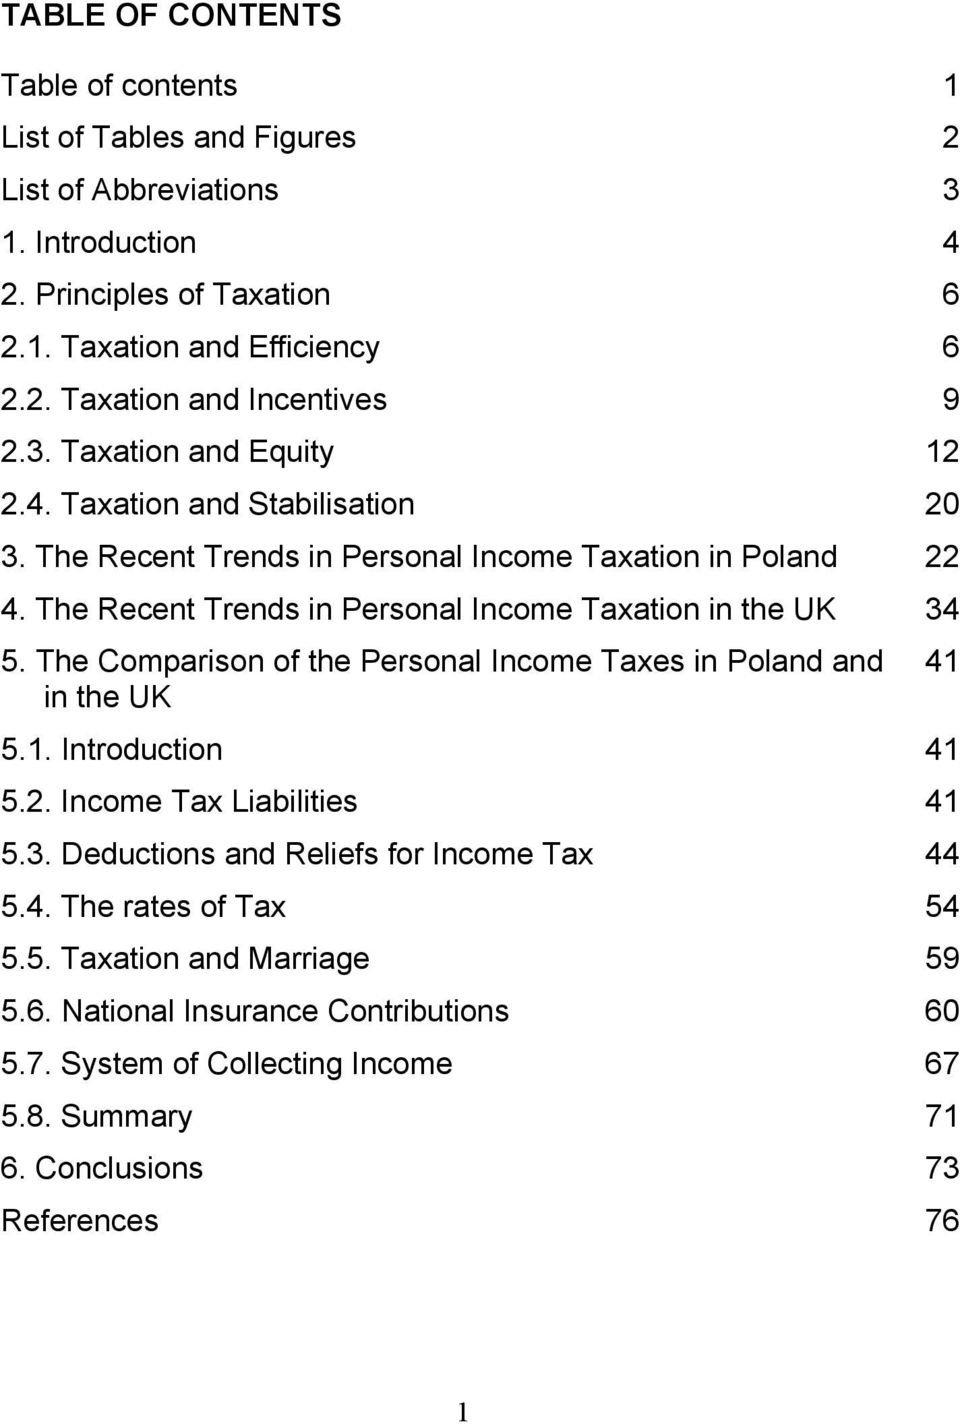 The Recent Trends in Personal Income Taxation in the UK 34 5. The Comparison of the Personal Income Taxes in Poland and in the UK 5.1. Introduction 41 5.2. Income Tax Liabilities 41 5.